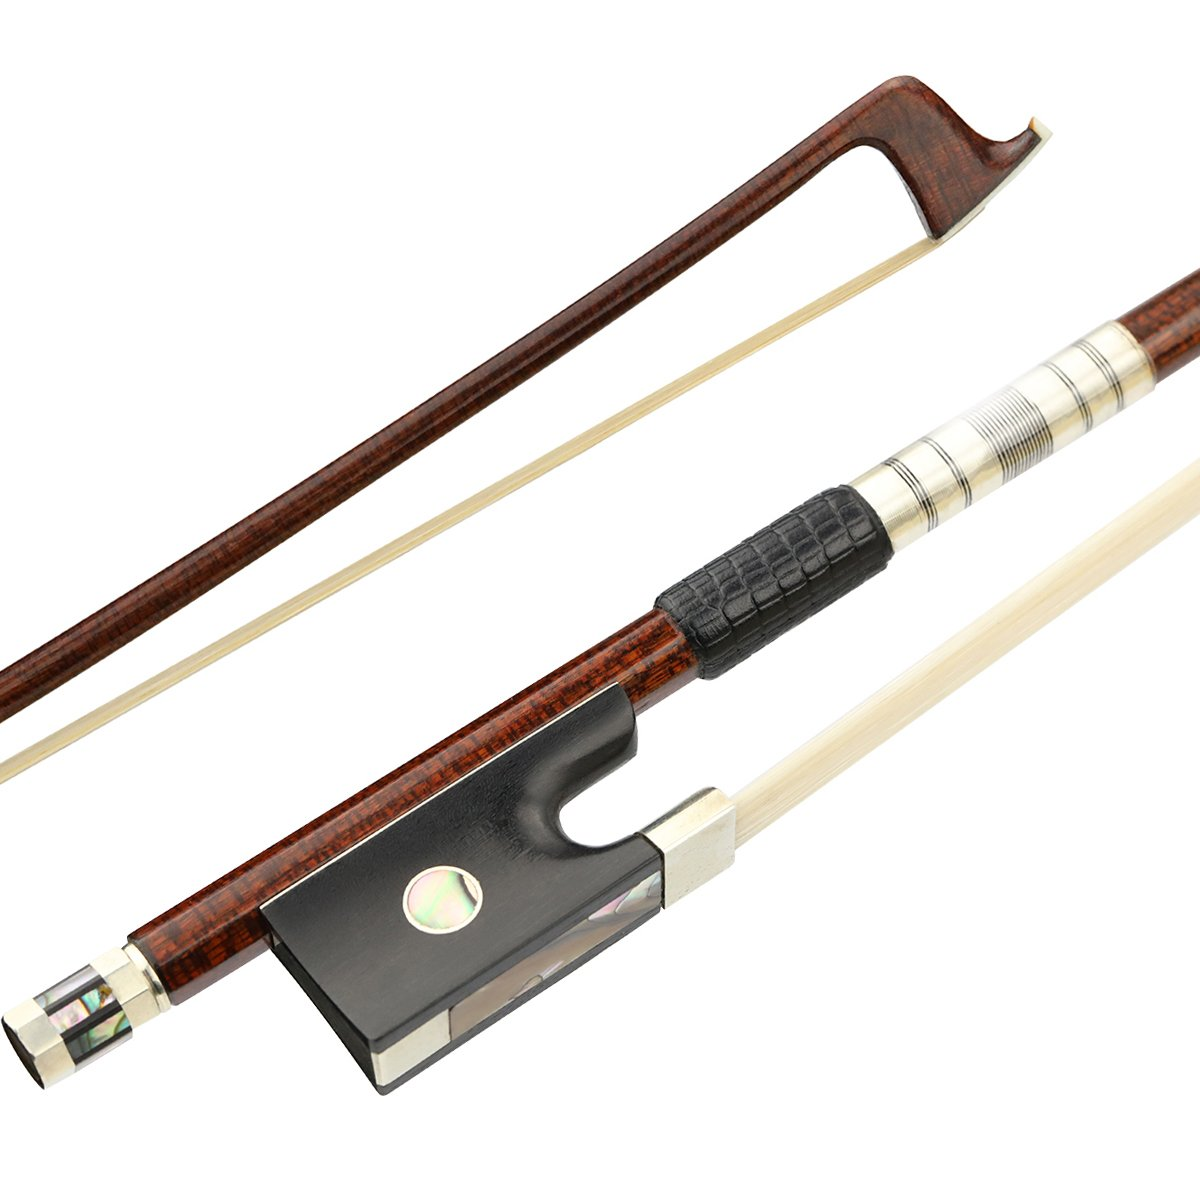 JOYHER Full Size Violin Bow with horsehair Carbon Fiber bow in 44 brown Wood grain Well Balanced